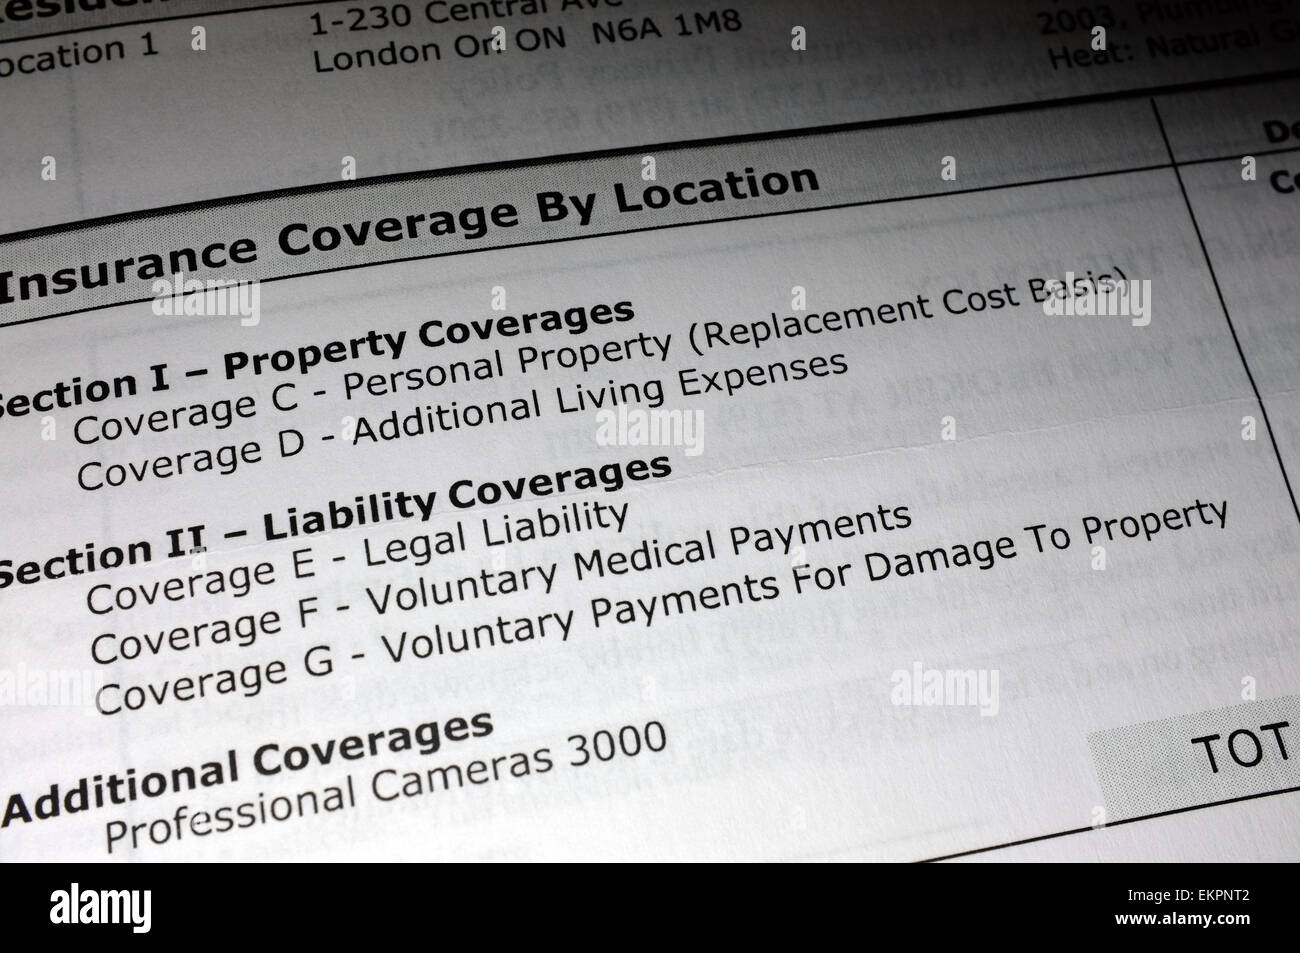 Property and Liability Coverages on an insurance document. - Stock Image